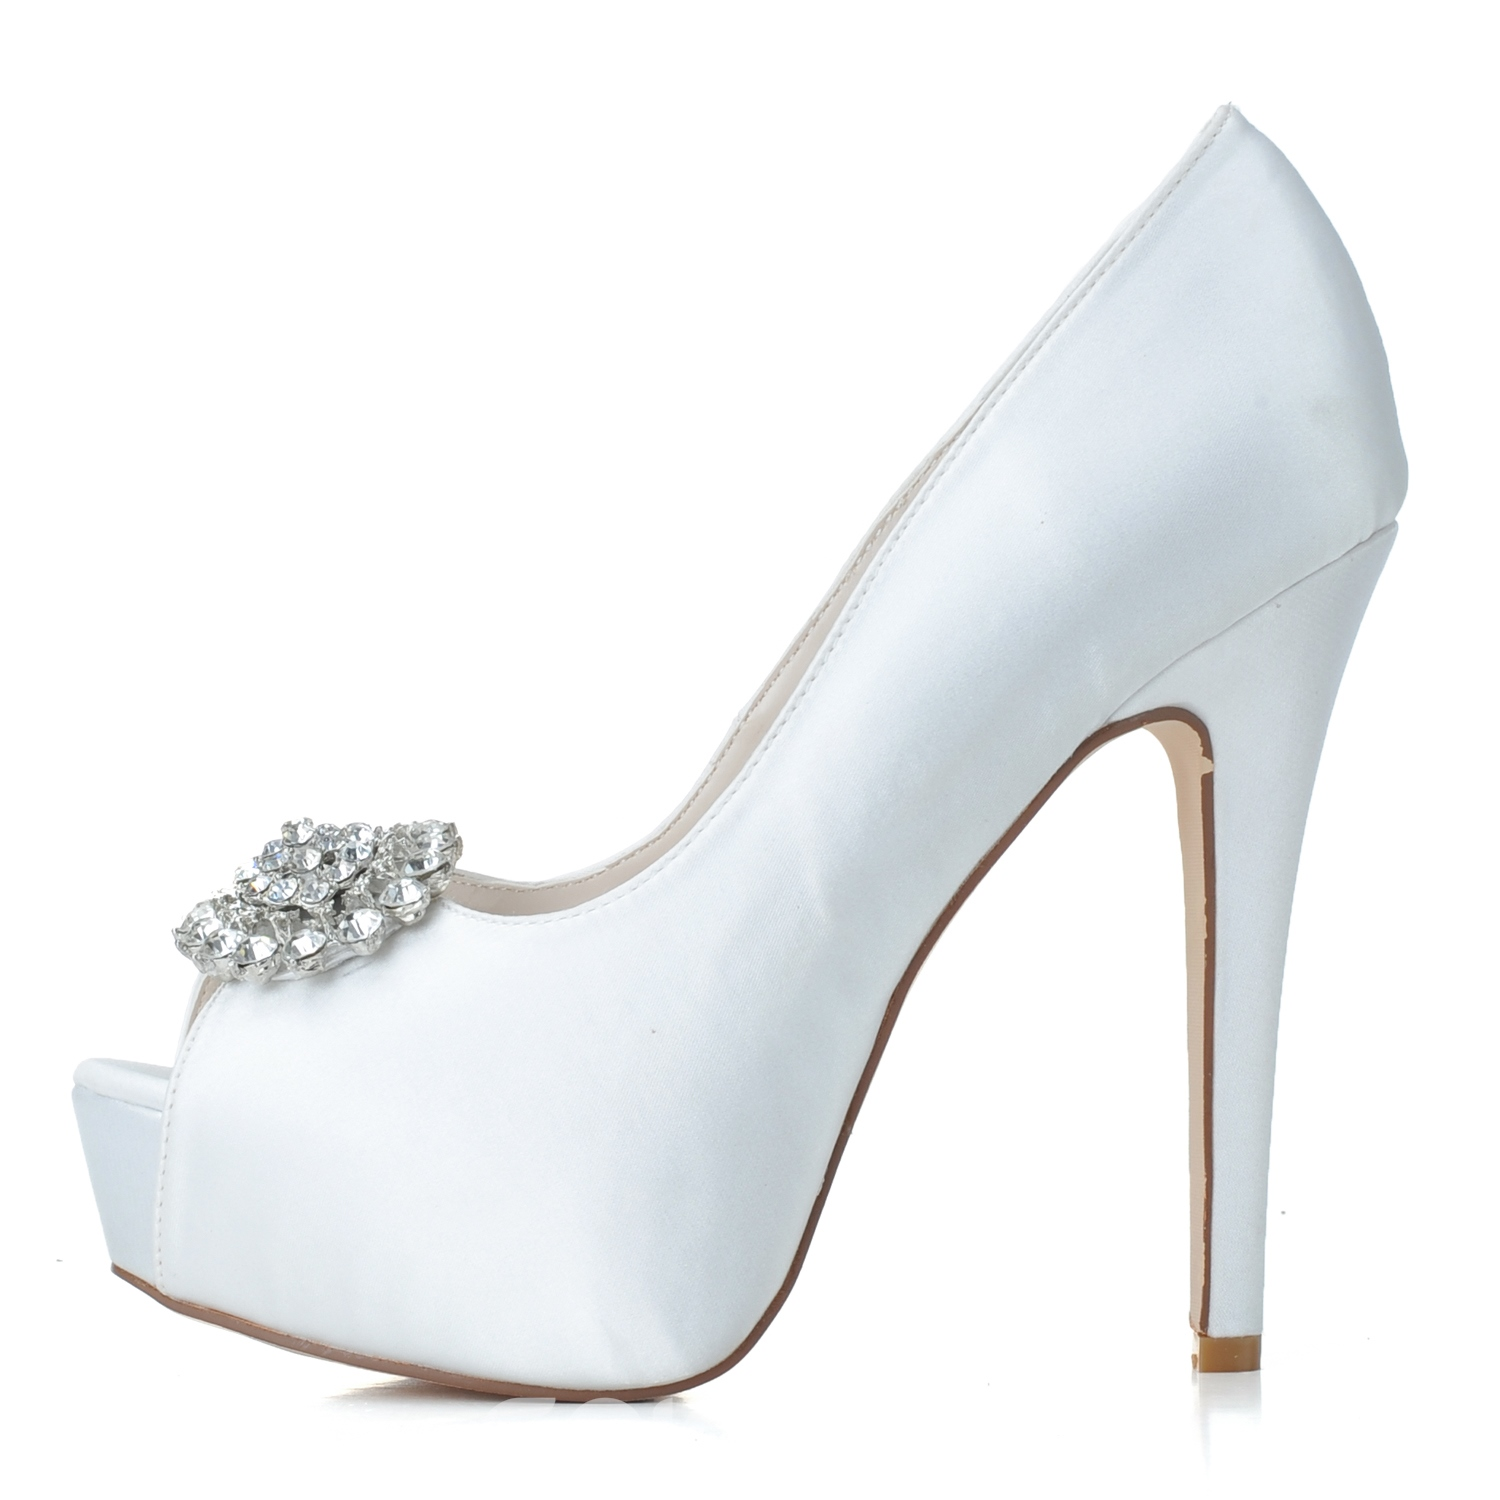 Ericdress Comfortable High Heel Wedding Shoes 11350033 - Ericdress.com